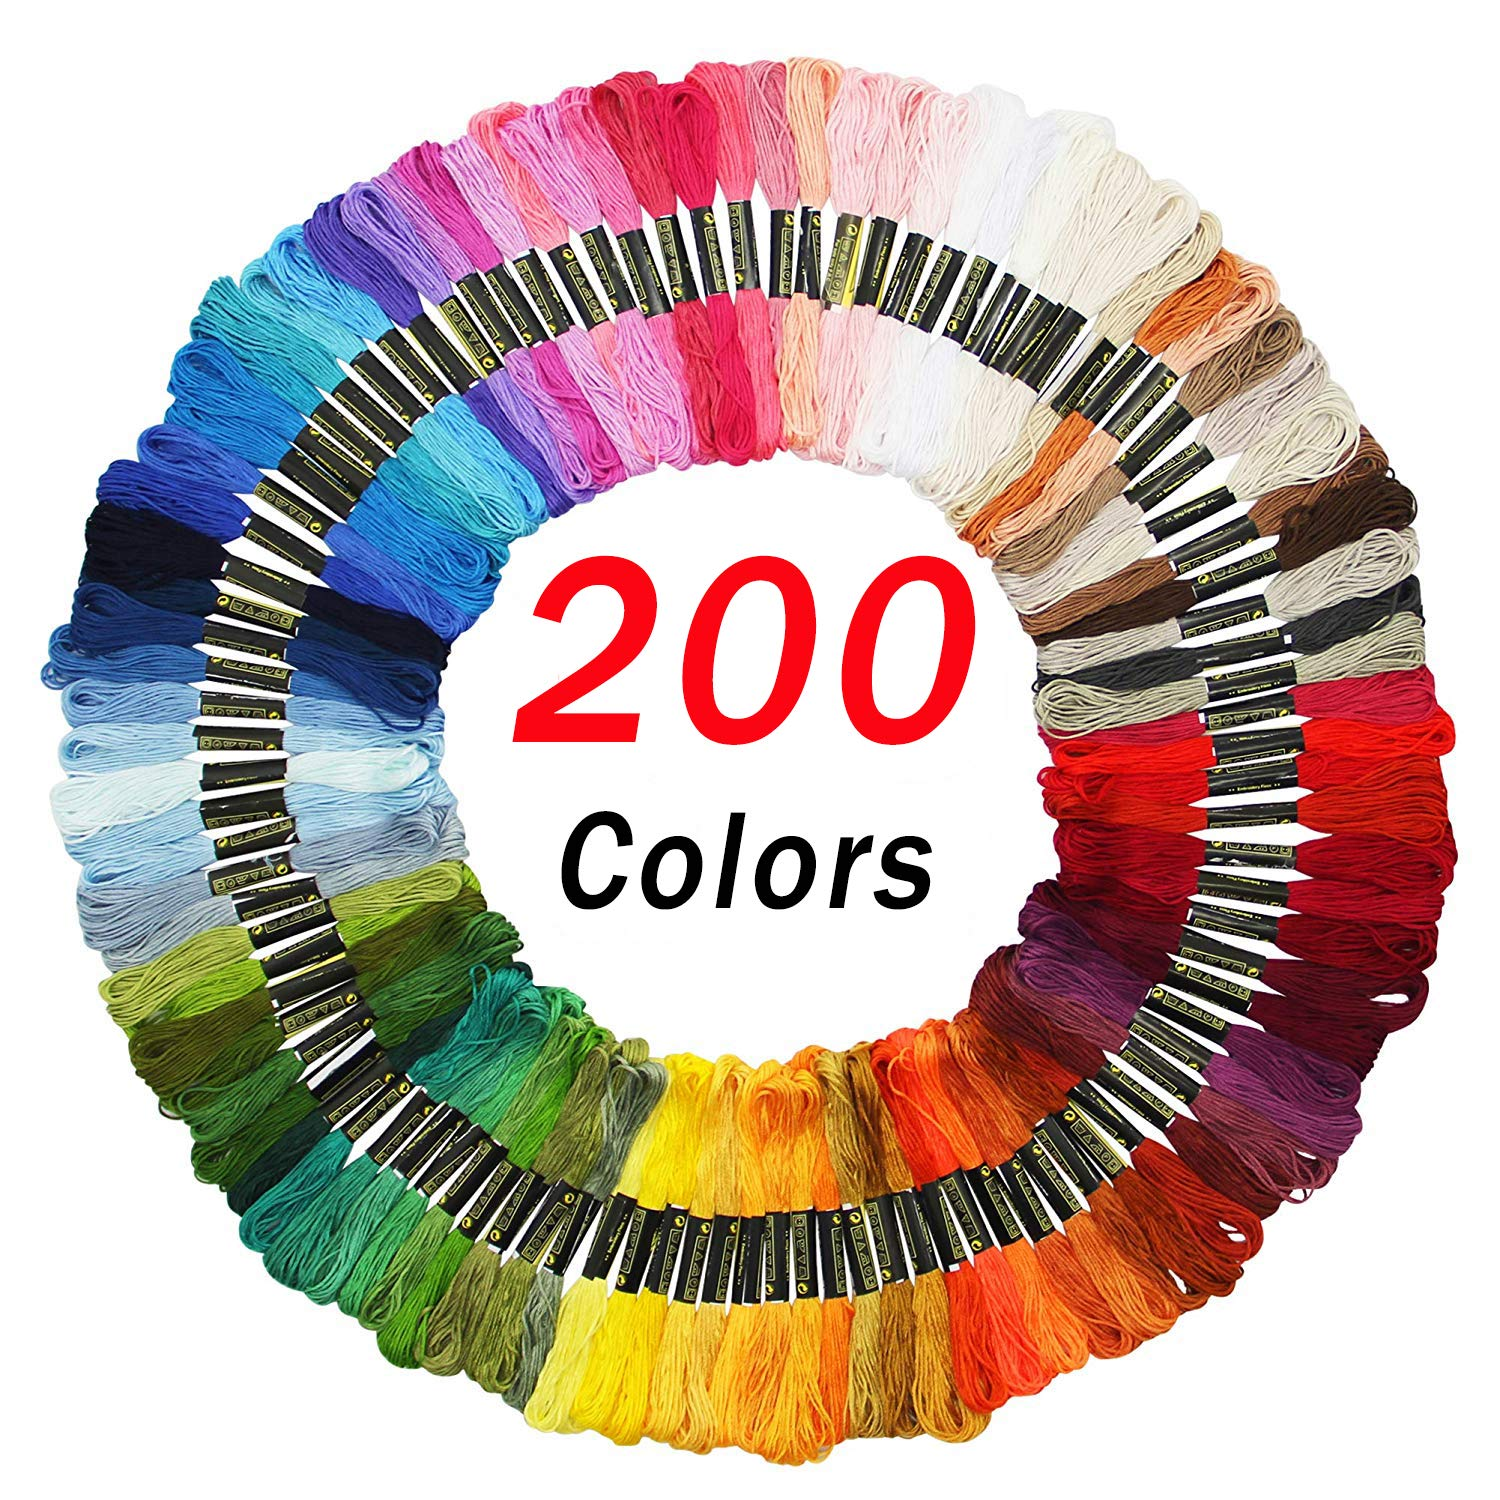 Embroidery Floss Friendship Bracelet String Cross Stitch Threads with DMC Color Numbers, 6 Strands 8.75 Yard (200 skeins) by Jyukan